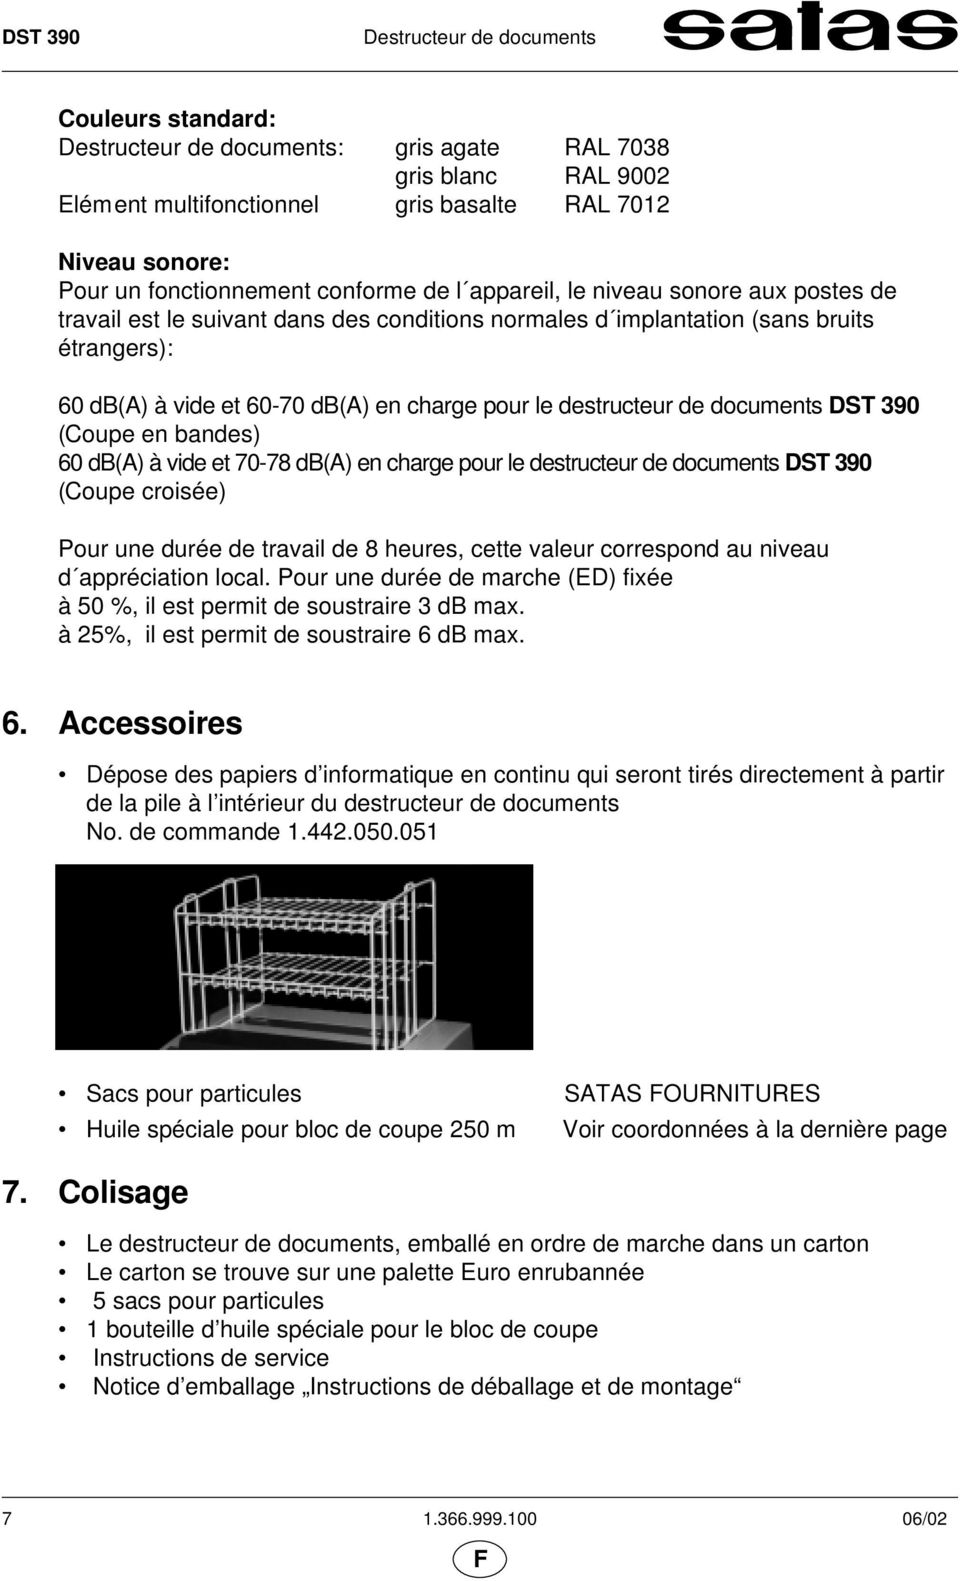 destructeur de documents DST 390 (Coupe en bandes) 60 db(a) à vide et 70-78 db(a) en charge pour le destructeur de documents DST 390 (Coupe croisée) Pour une durée de travail de 8 heures, cette